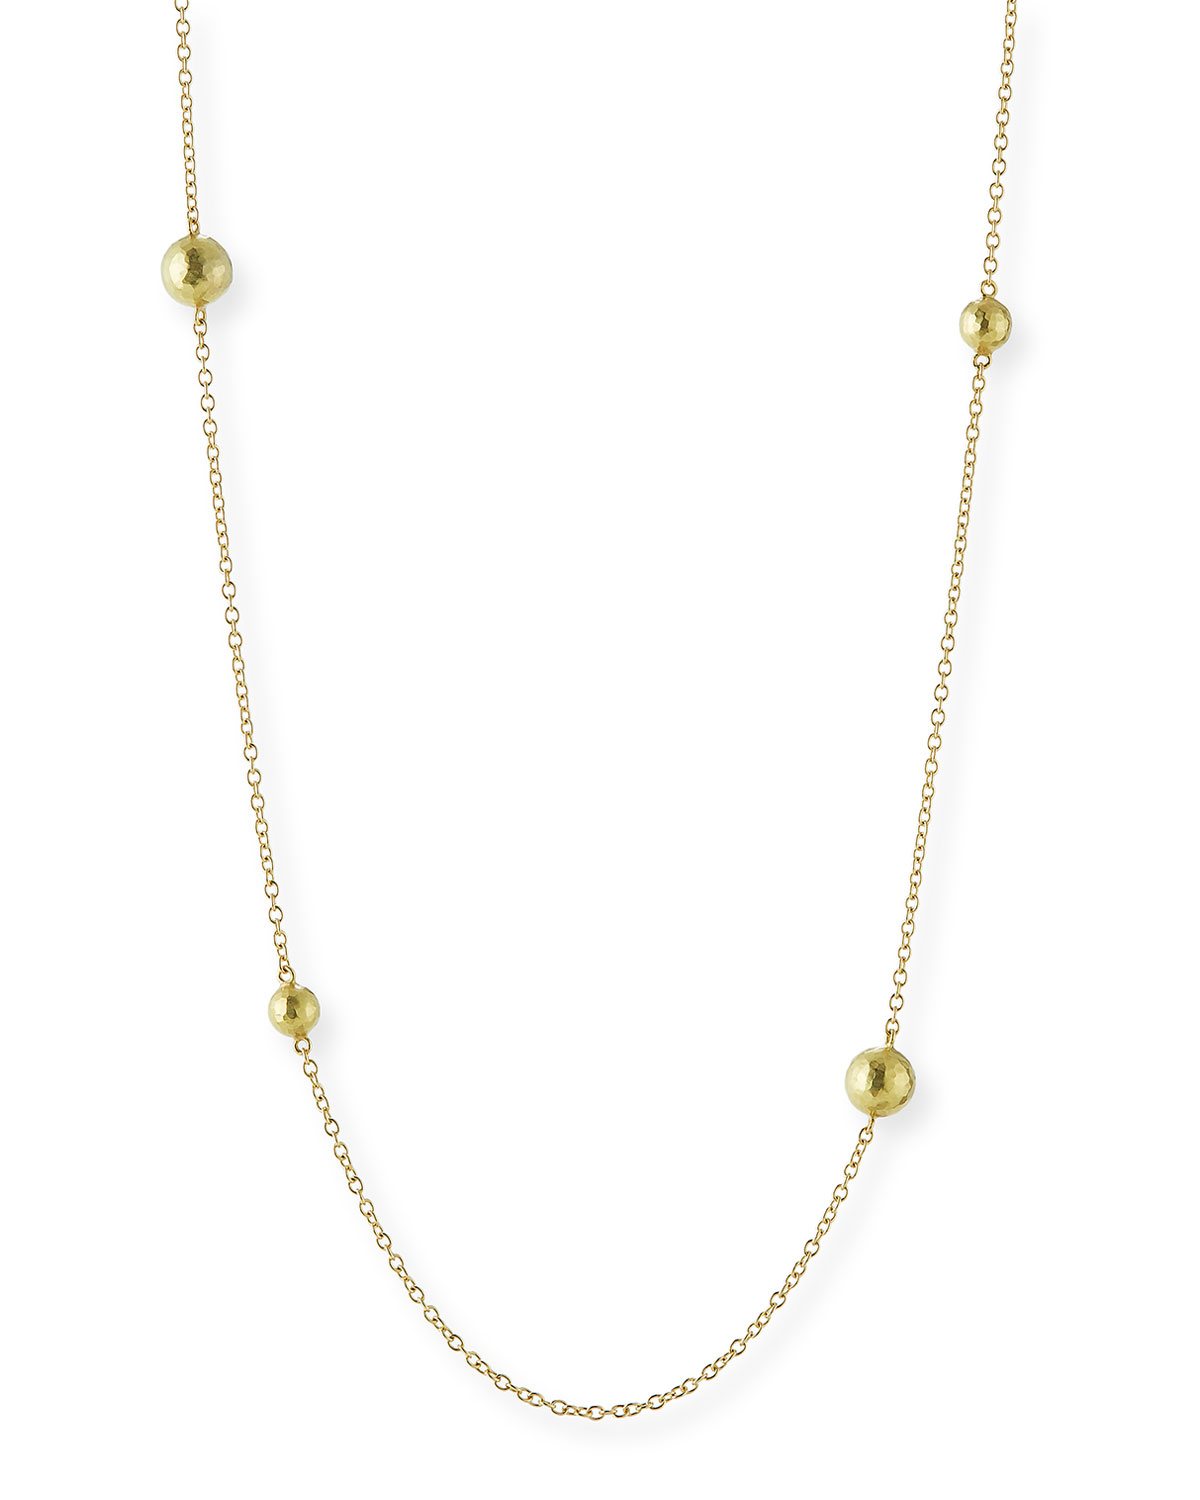 VENDORAFA SIX-BEAD 18K YELLOW GOLD CHAIN NECKLACE, 32""